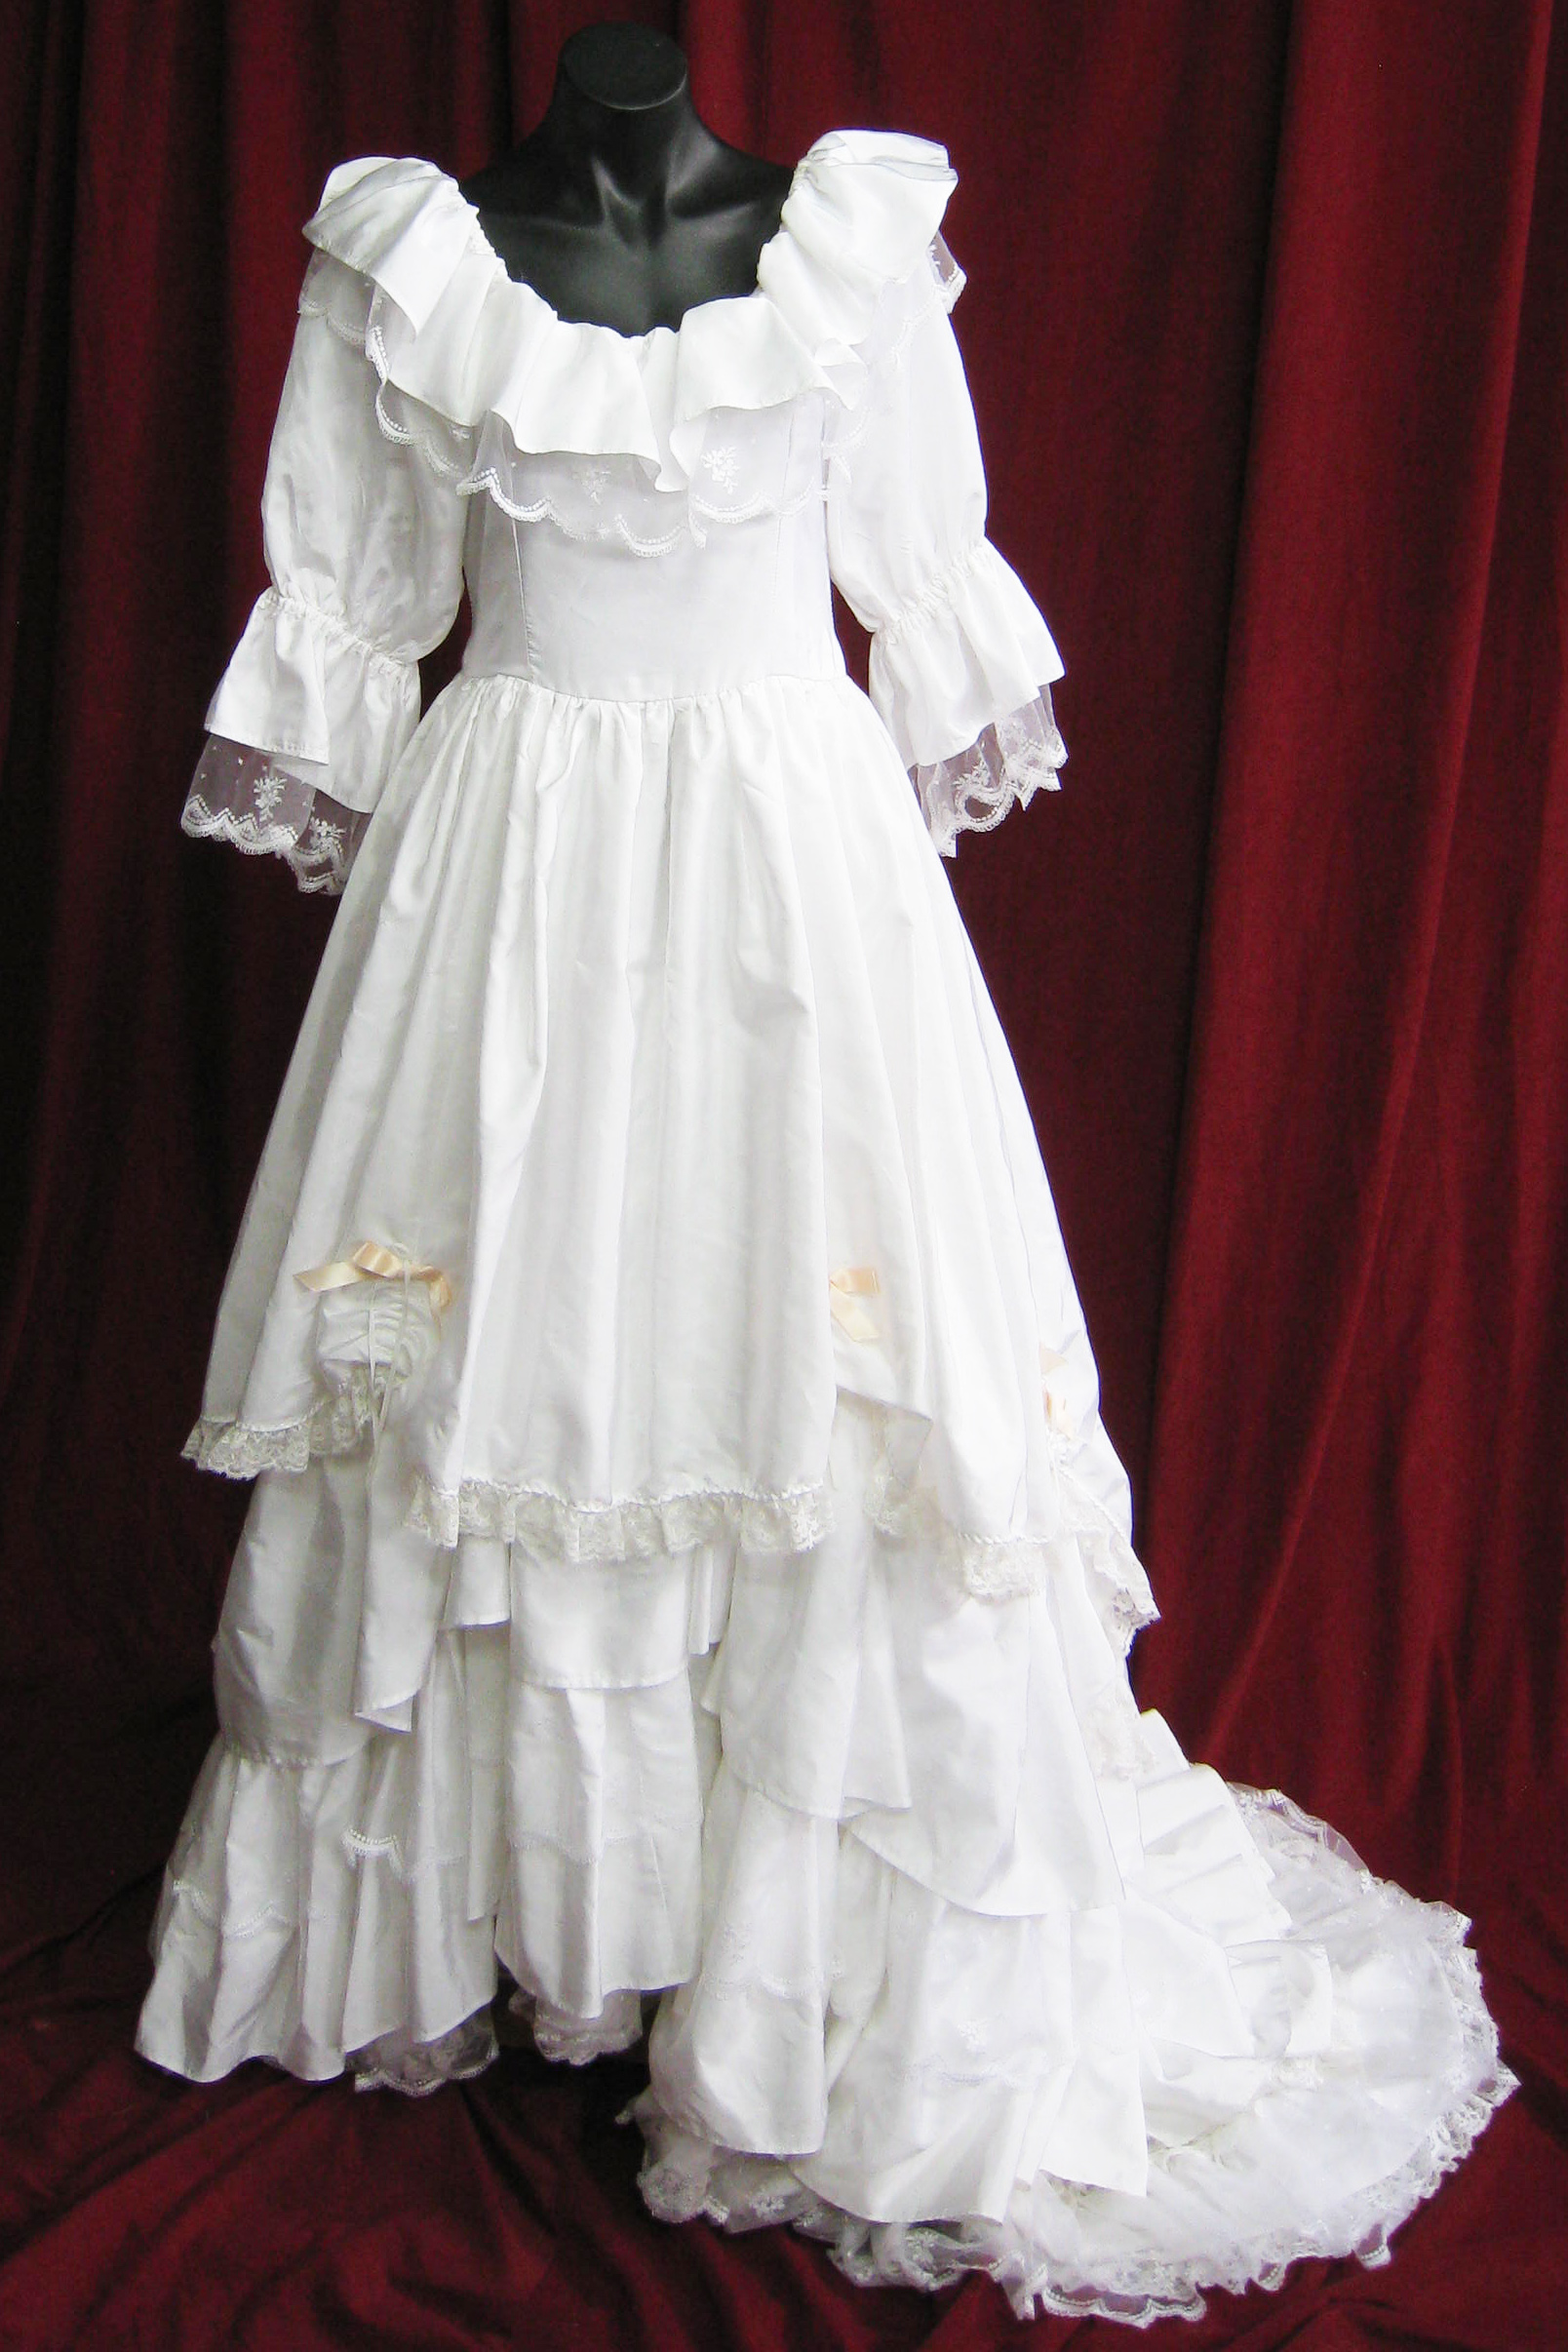 Wedding Dress Frills at Neck Layered Skirt sz. 12 45320067